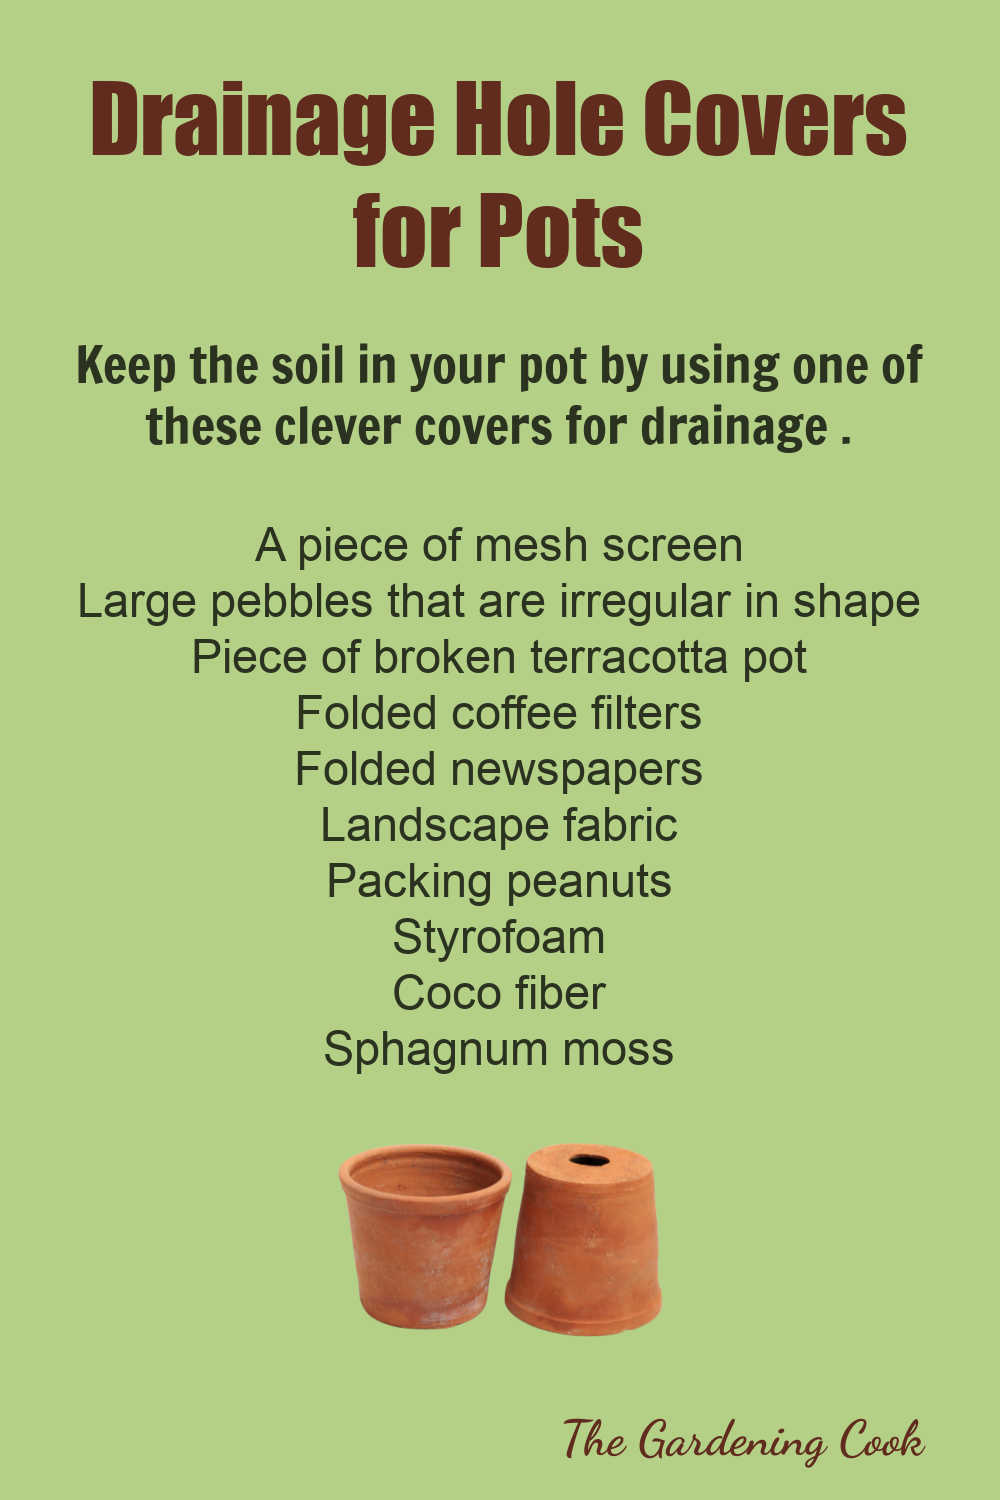 Printable chart with ideas for covering drainage holes in pots.